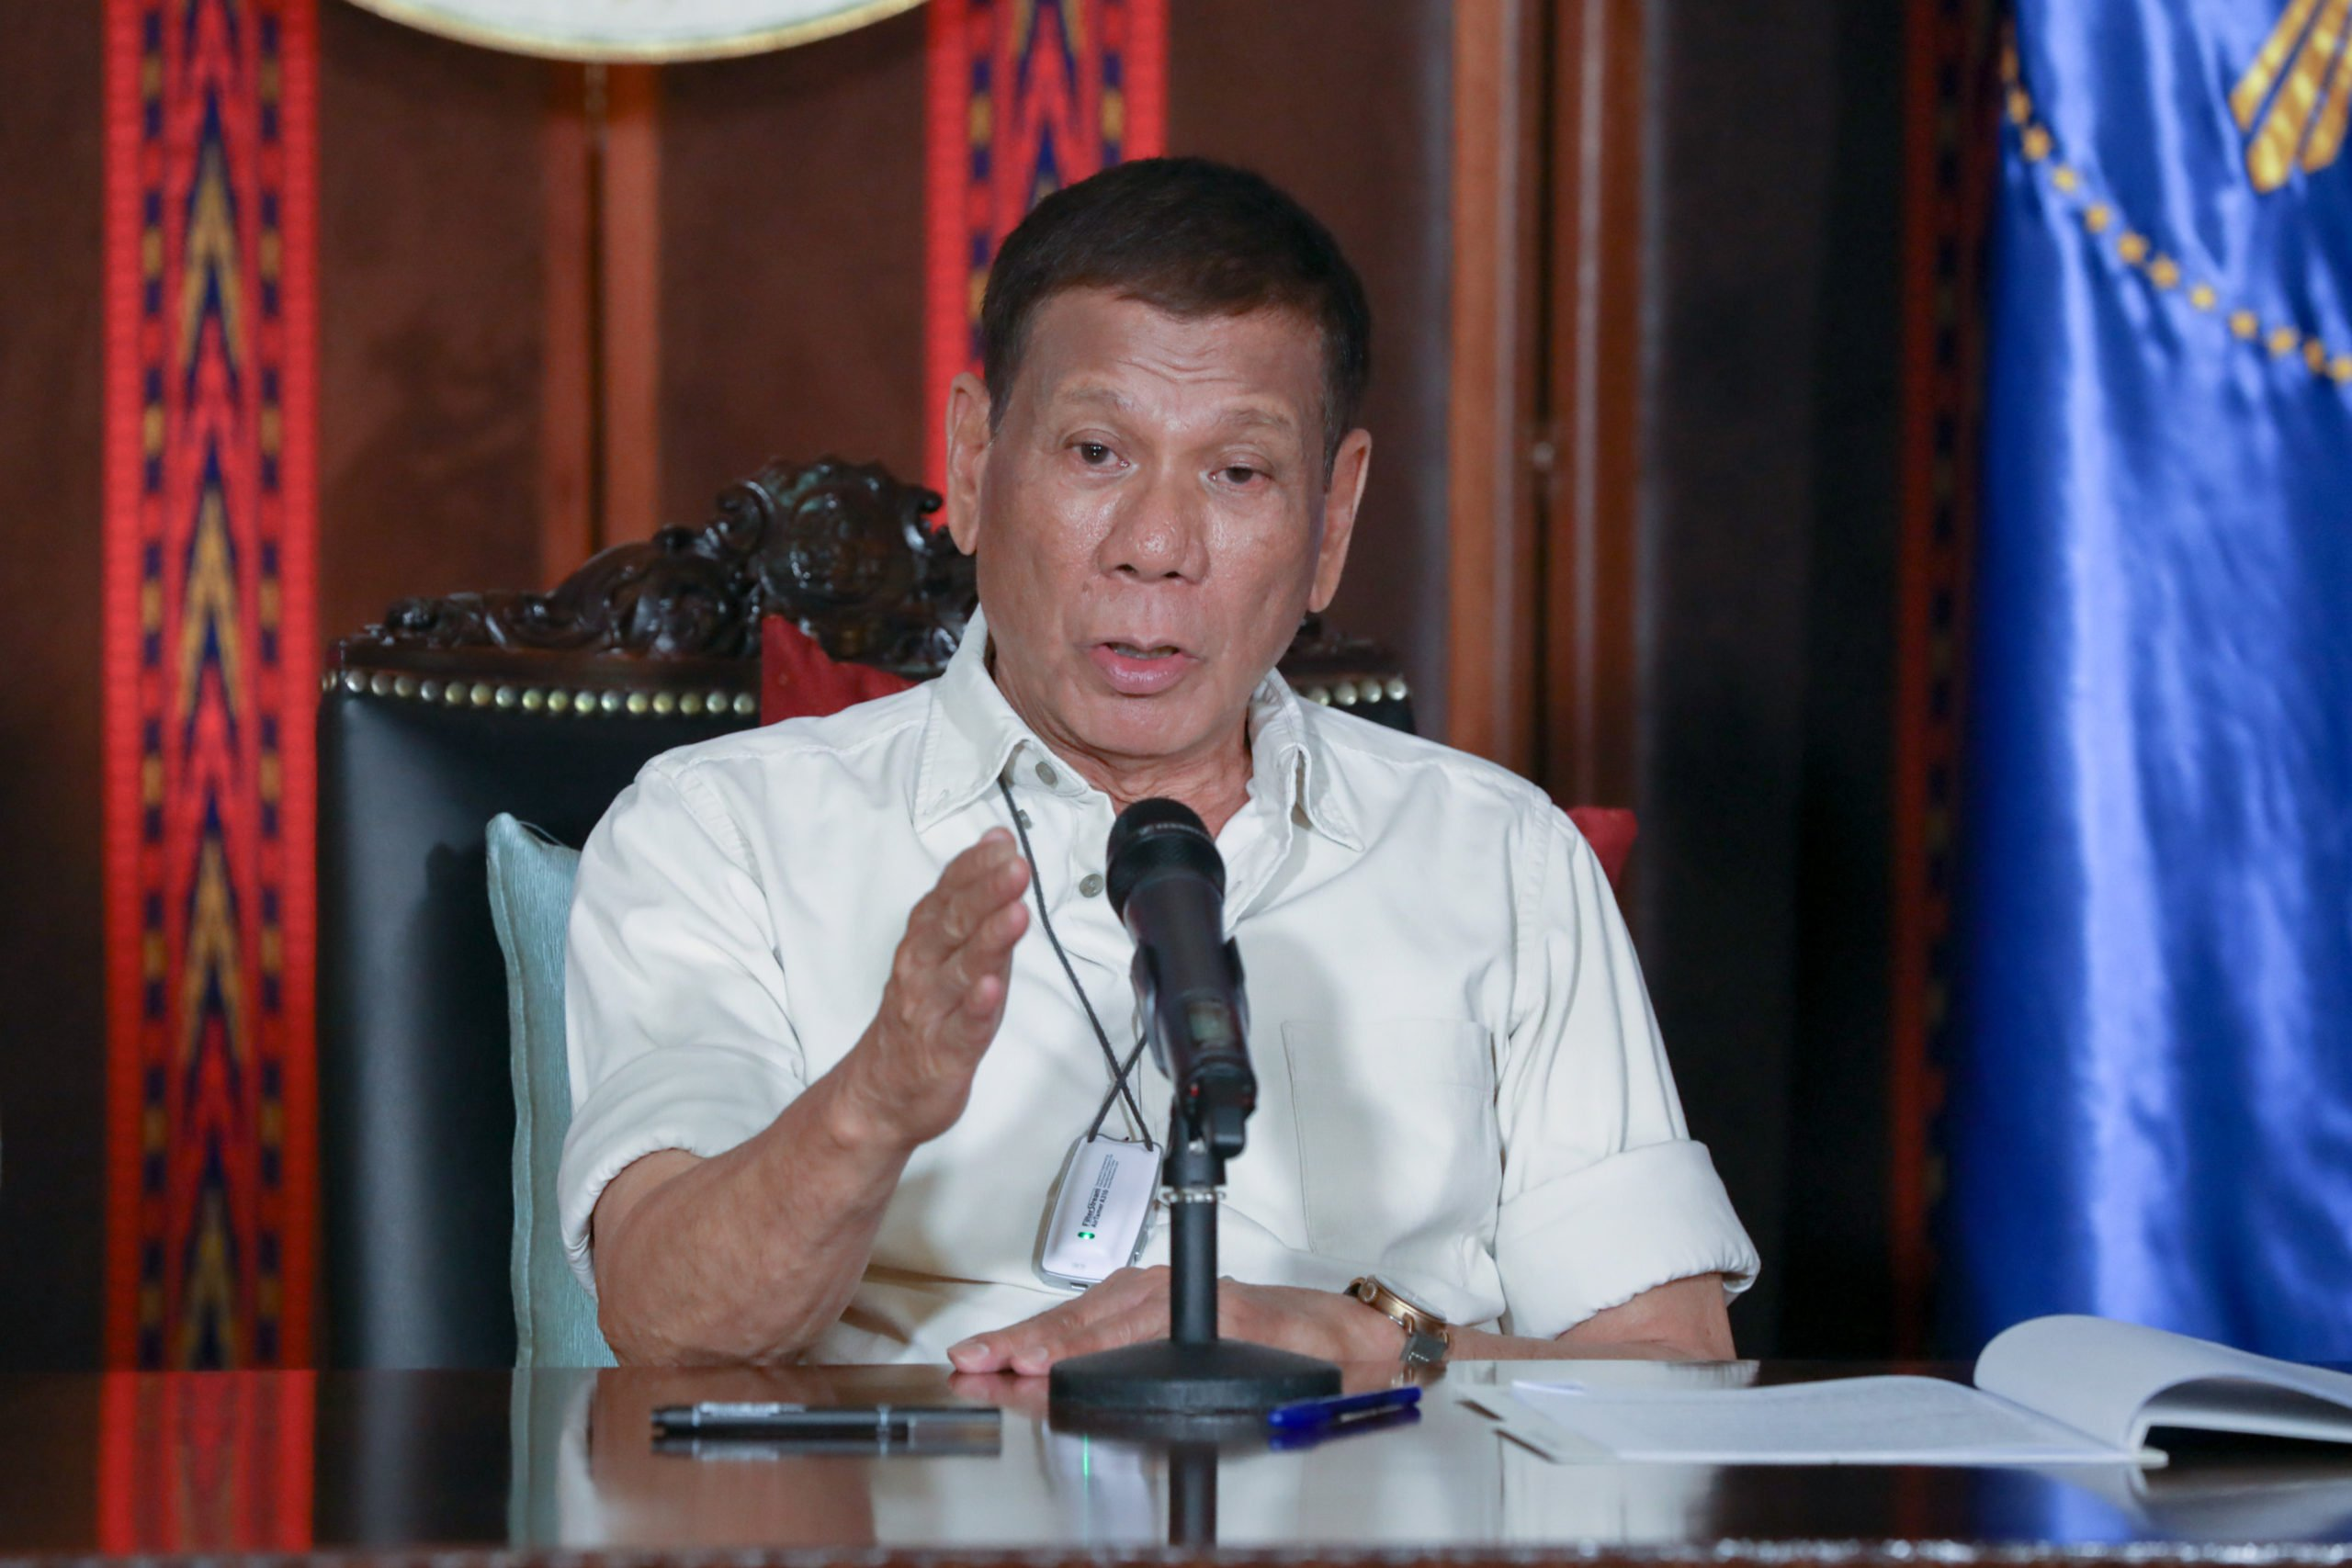 President Rodrigo Duterte updates the nation on the government's efforts in addressing the coronavirus disease (COVID-19) at the Malago Clubhouse in Malacañang on April 3, 2020. TOTO LOZANO / PRESIDENTIAL PHOTO